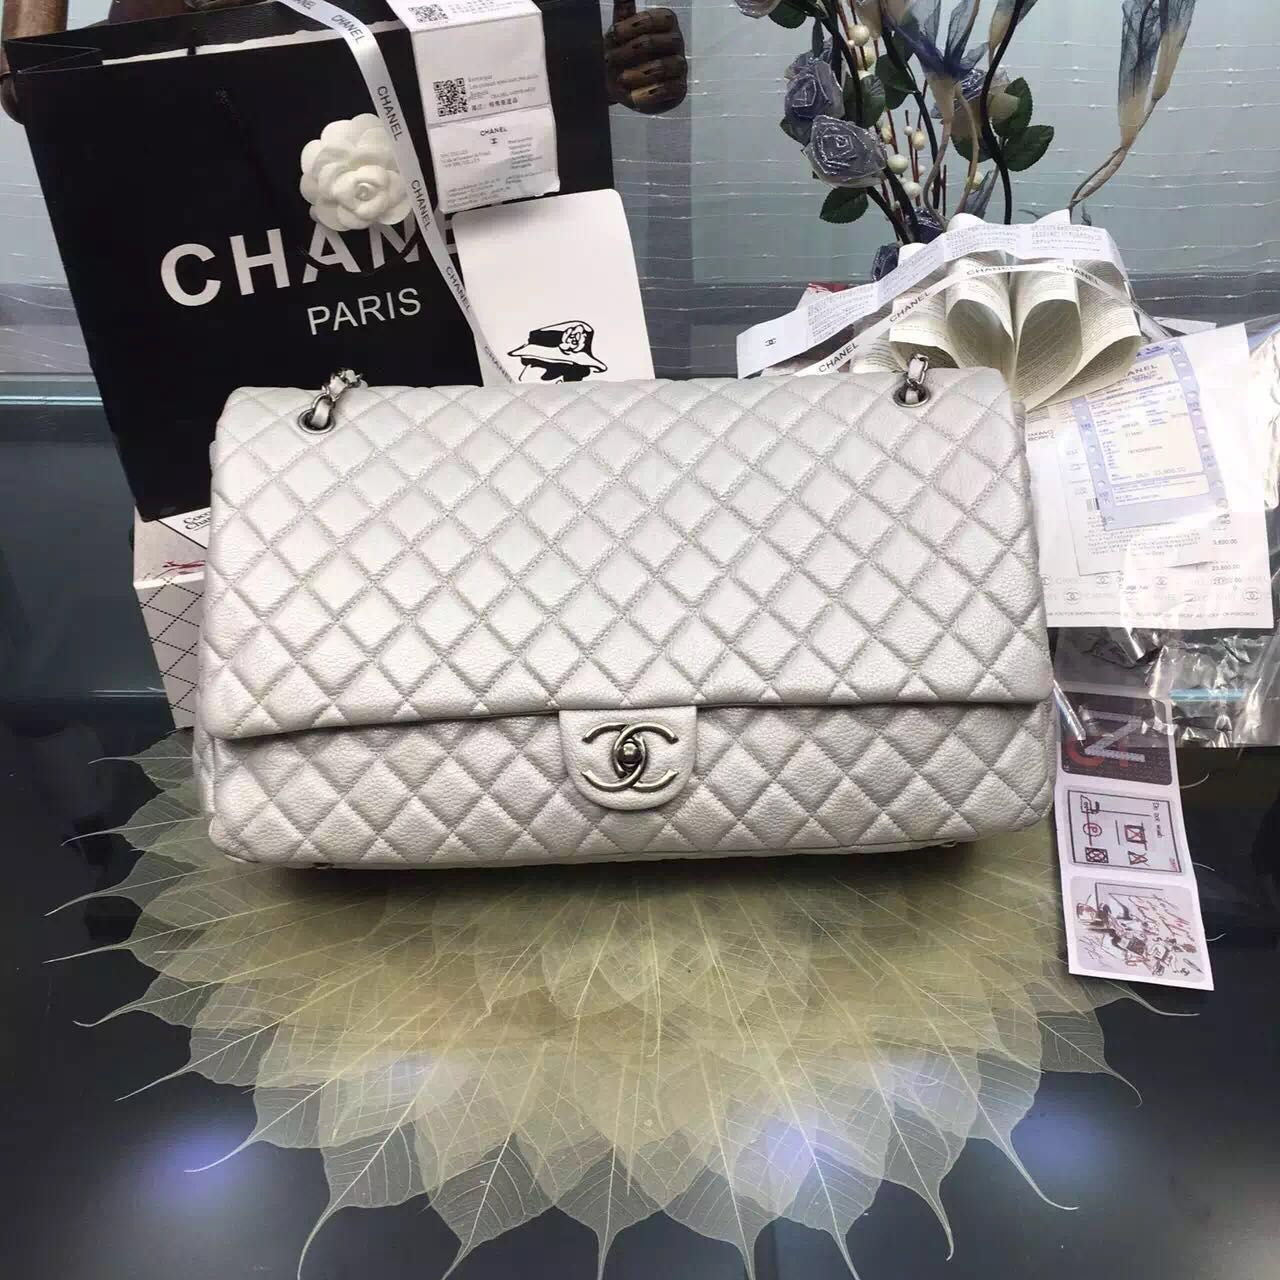 CHANEL CLASSIC BAG REAL LEATHER GST 190332 off-white